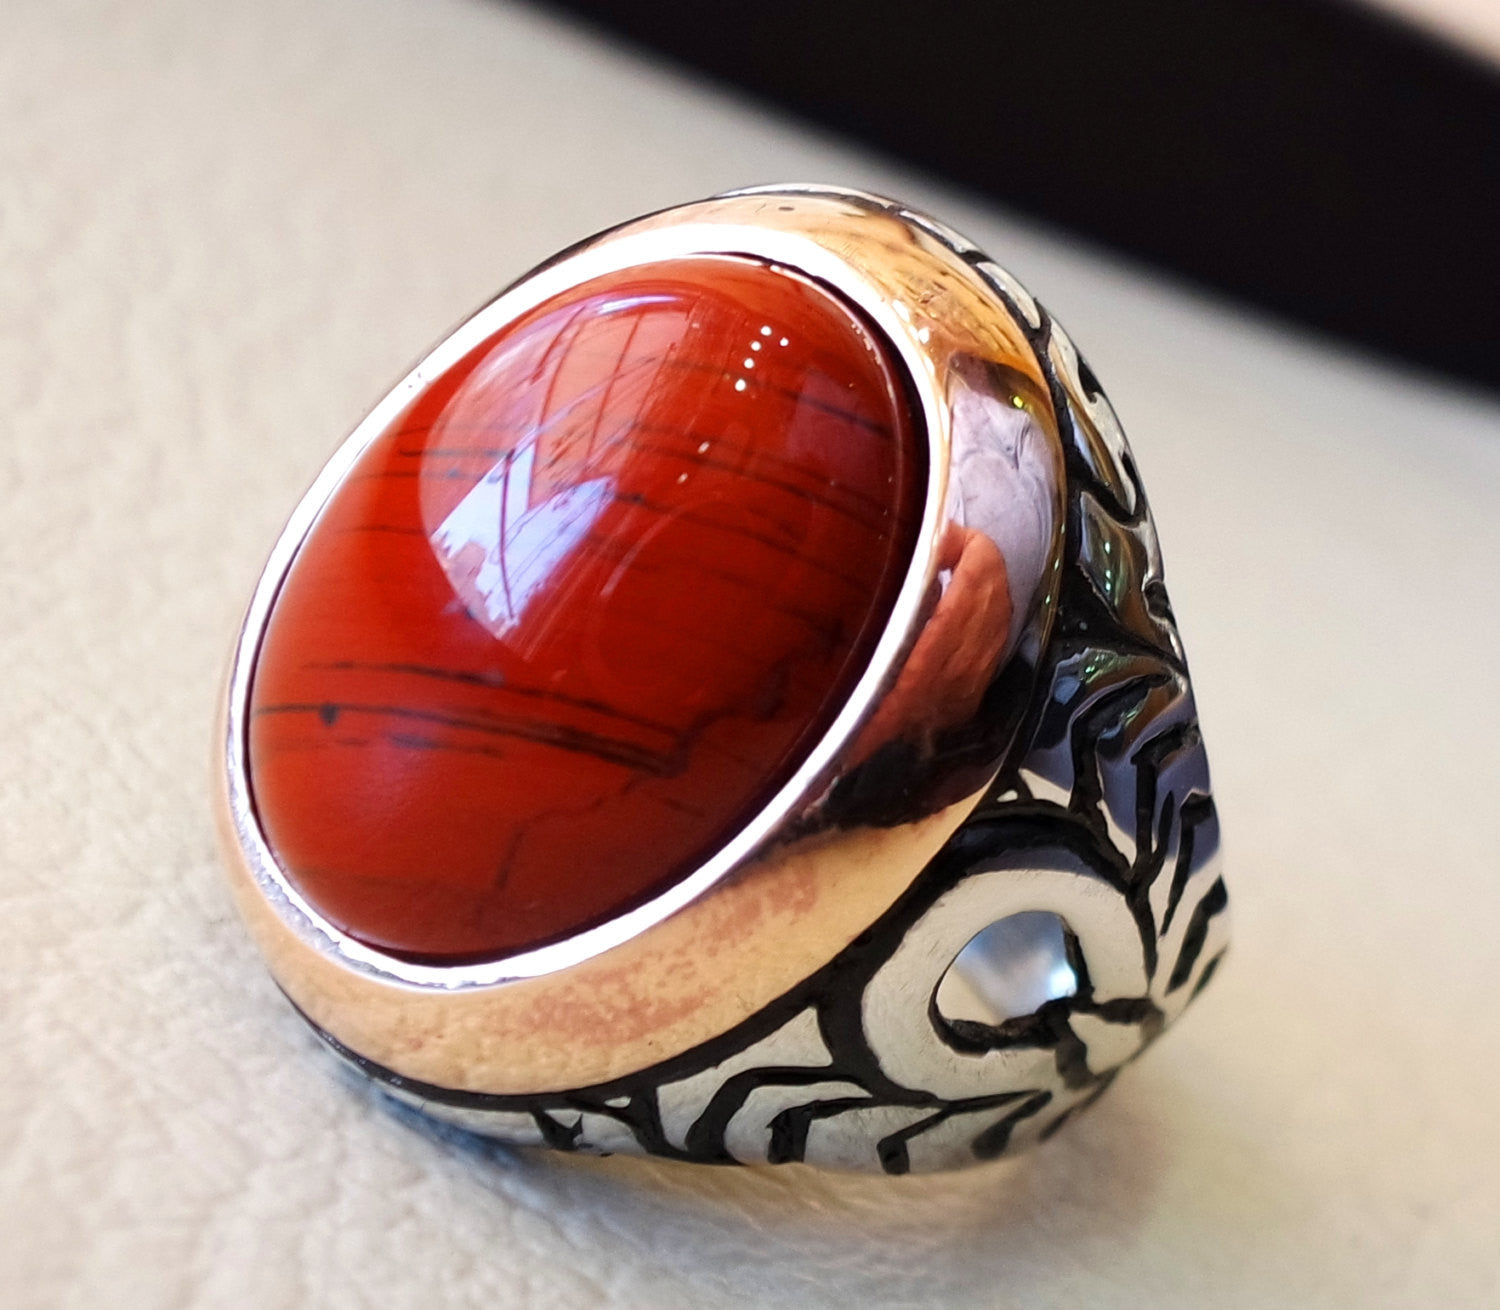 pure red jasper man ring stone natural aqeeq gem sterling silver 925 ring  oval semi precious cabochon  jewelry with bronze frame